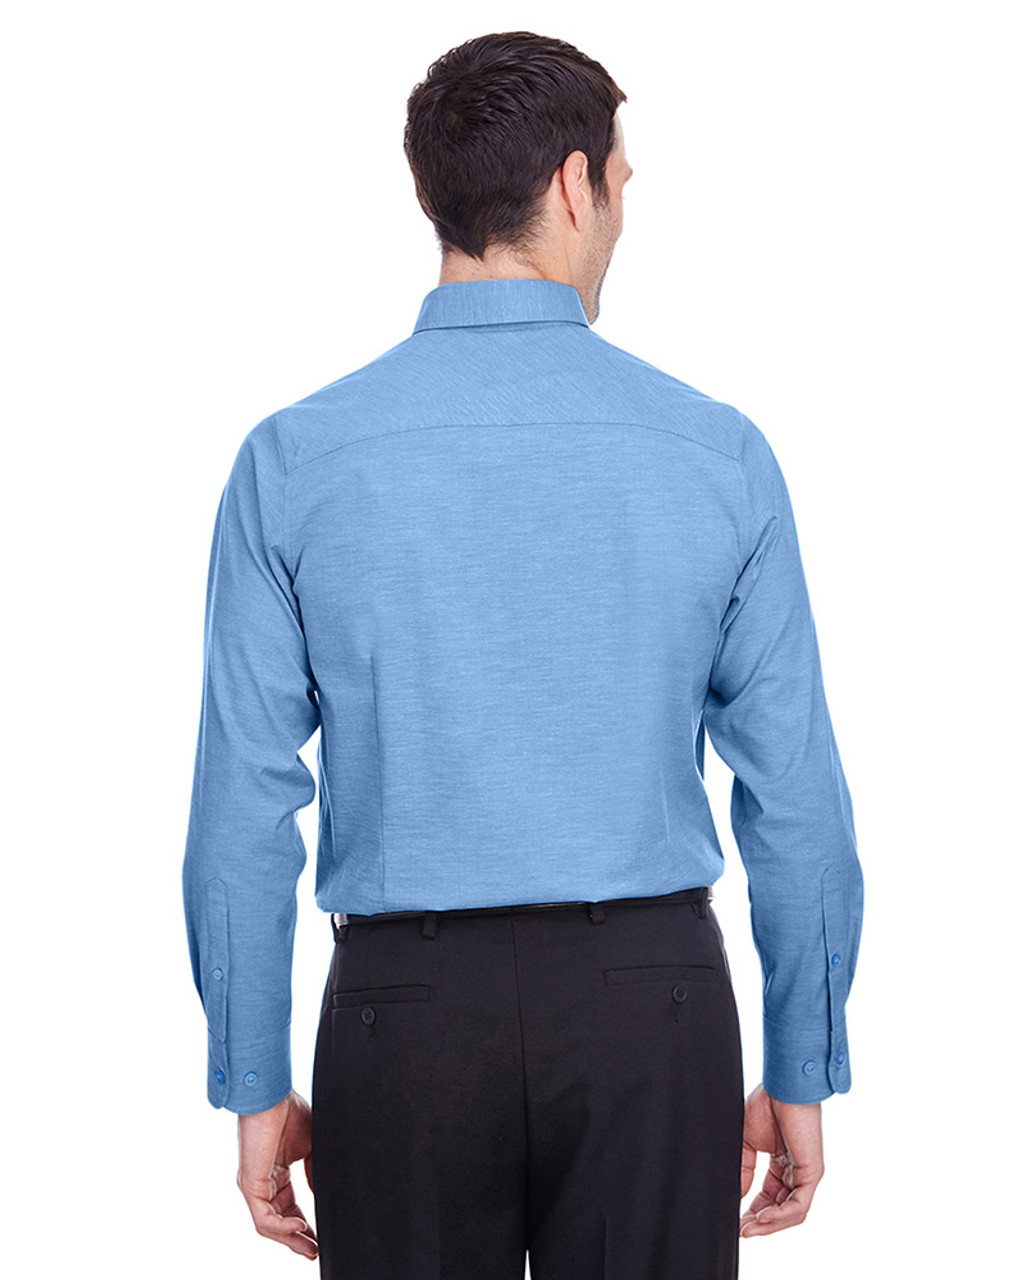 French Blue - back, DG562 Devon & Jones Men's Crown Collection™ Stretch Pinpoint Chambray Shirt | Blankclothing.ca